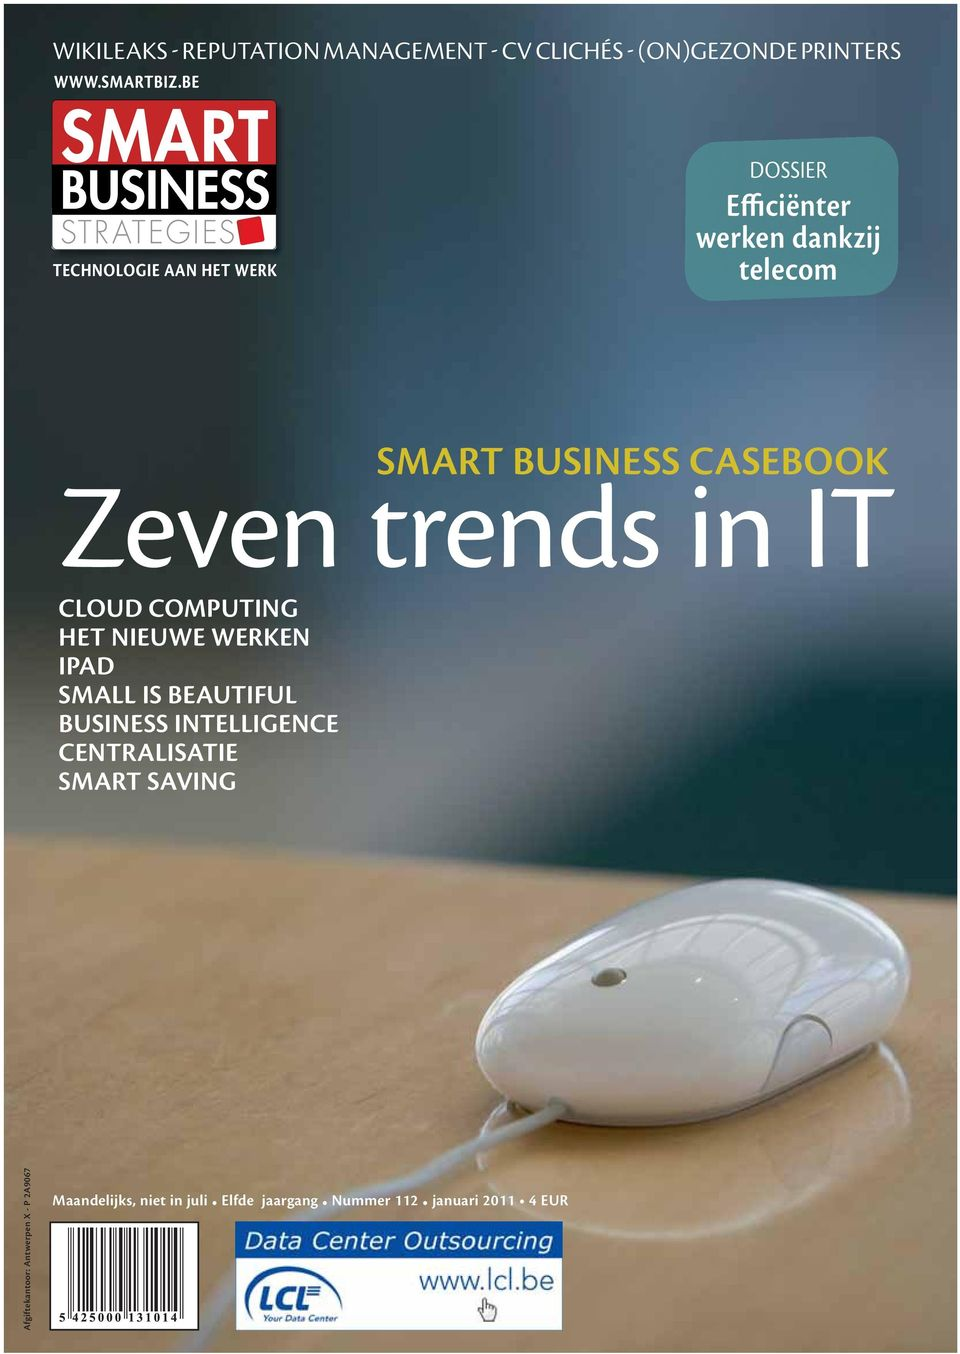 trends in IT CLOUD COMPUTING HET NIEUWE WERKEN IPAD SMALL IS BEAUTIFUL BUSINESS INTELLIGENCE